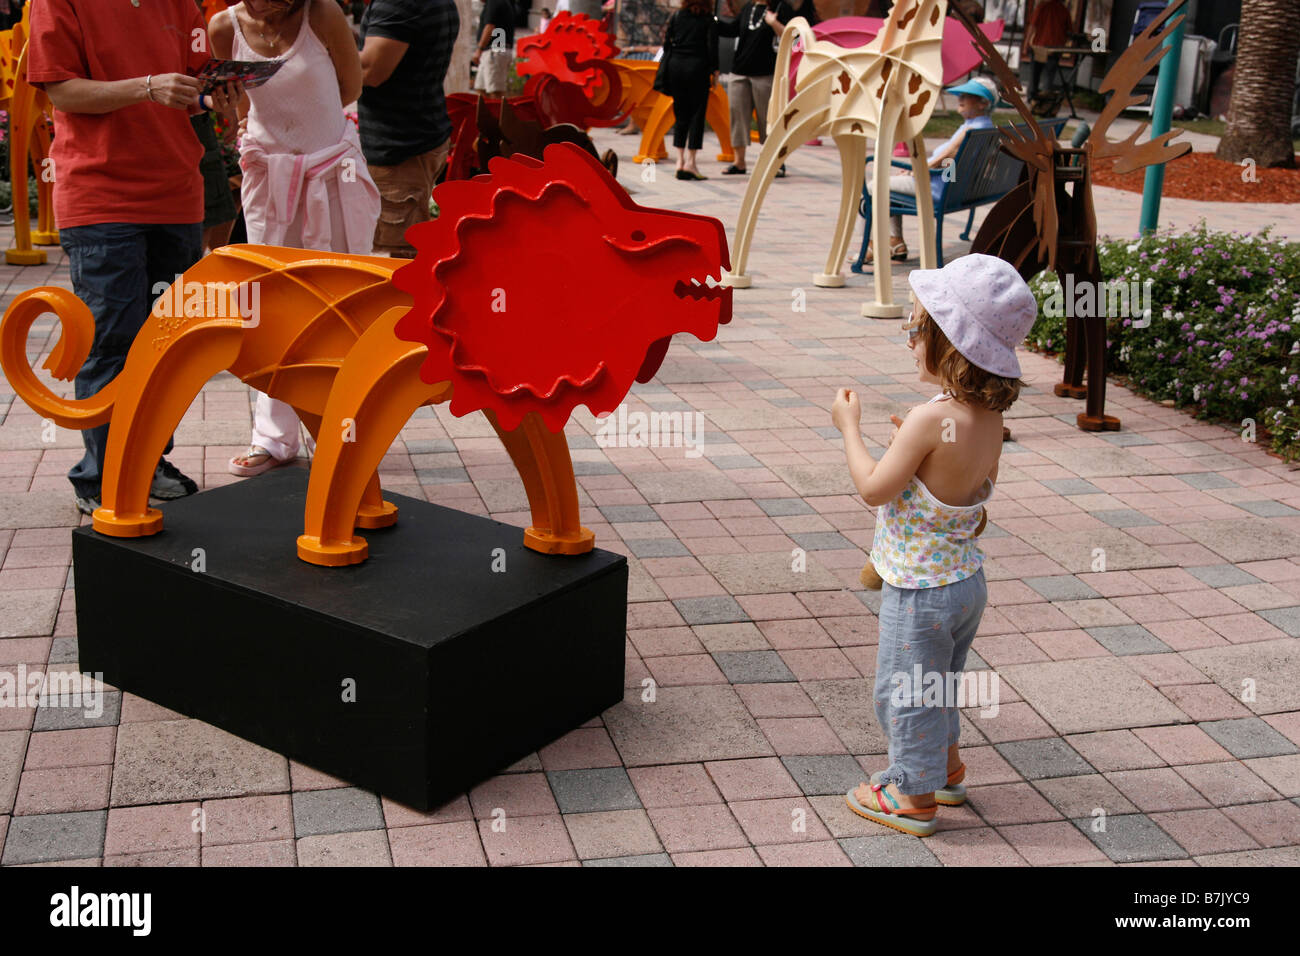 Young girl 4-6 years old is curious and fascinated by a sculpture of a metal lion. - Stock Image